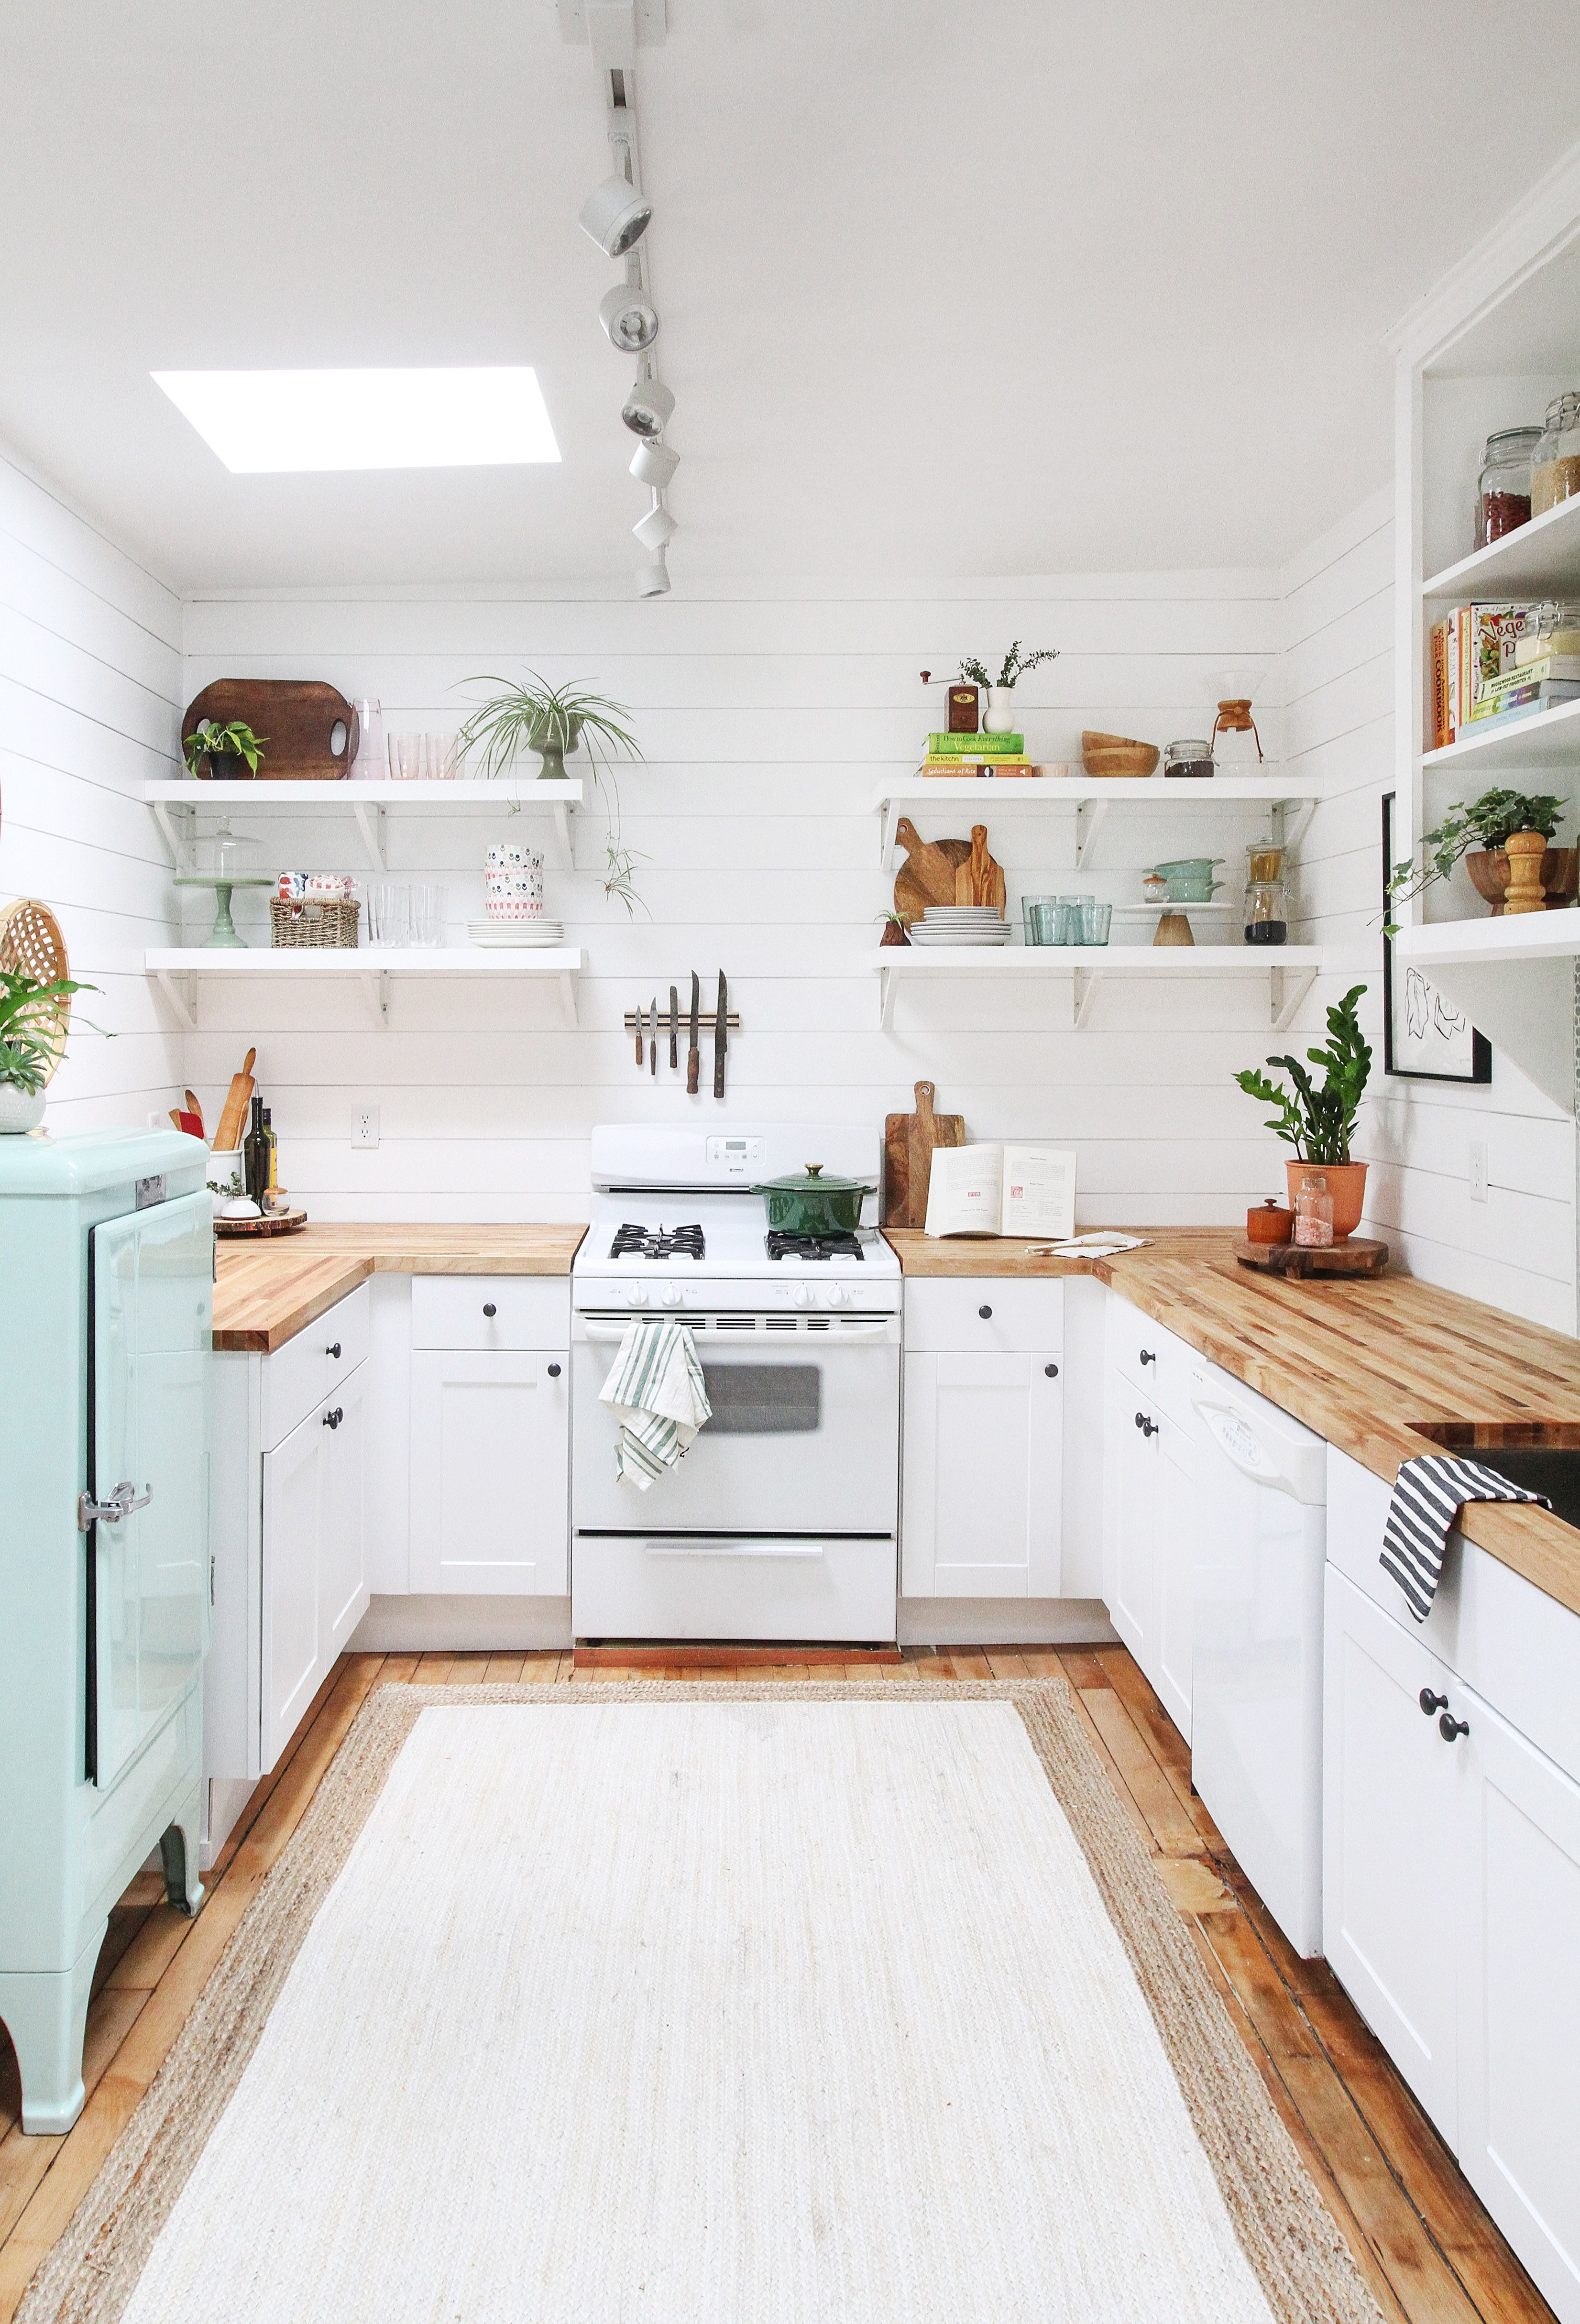 12 incredible kitchen remodel on a budget ideas in 2020 kitchen remodel small white kitchen on kitchen ideas on a budget id=17959